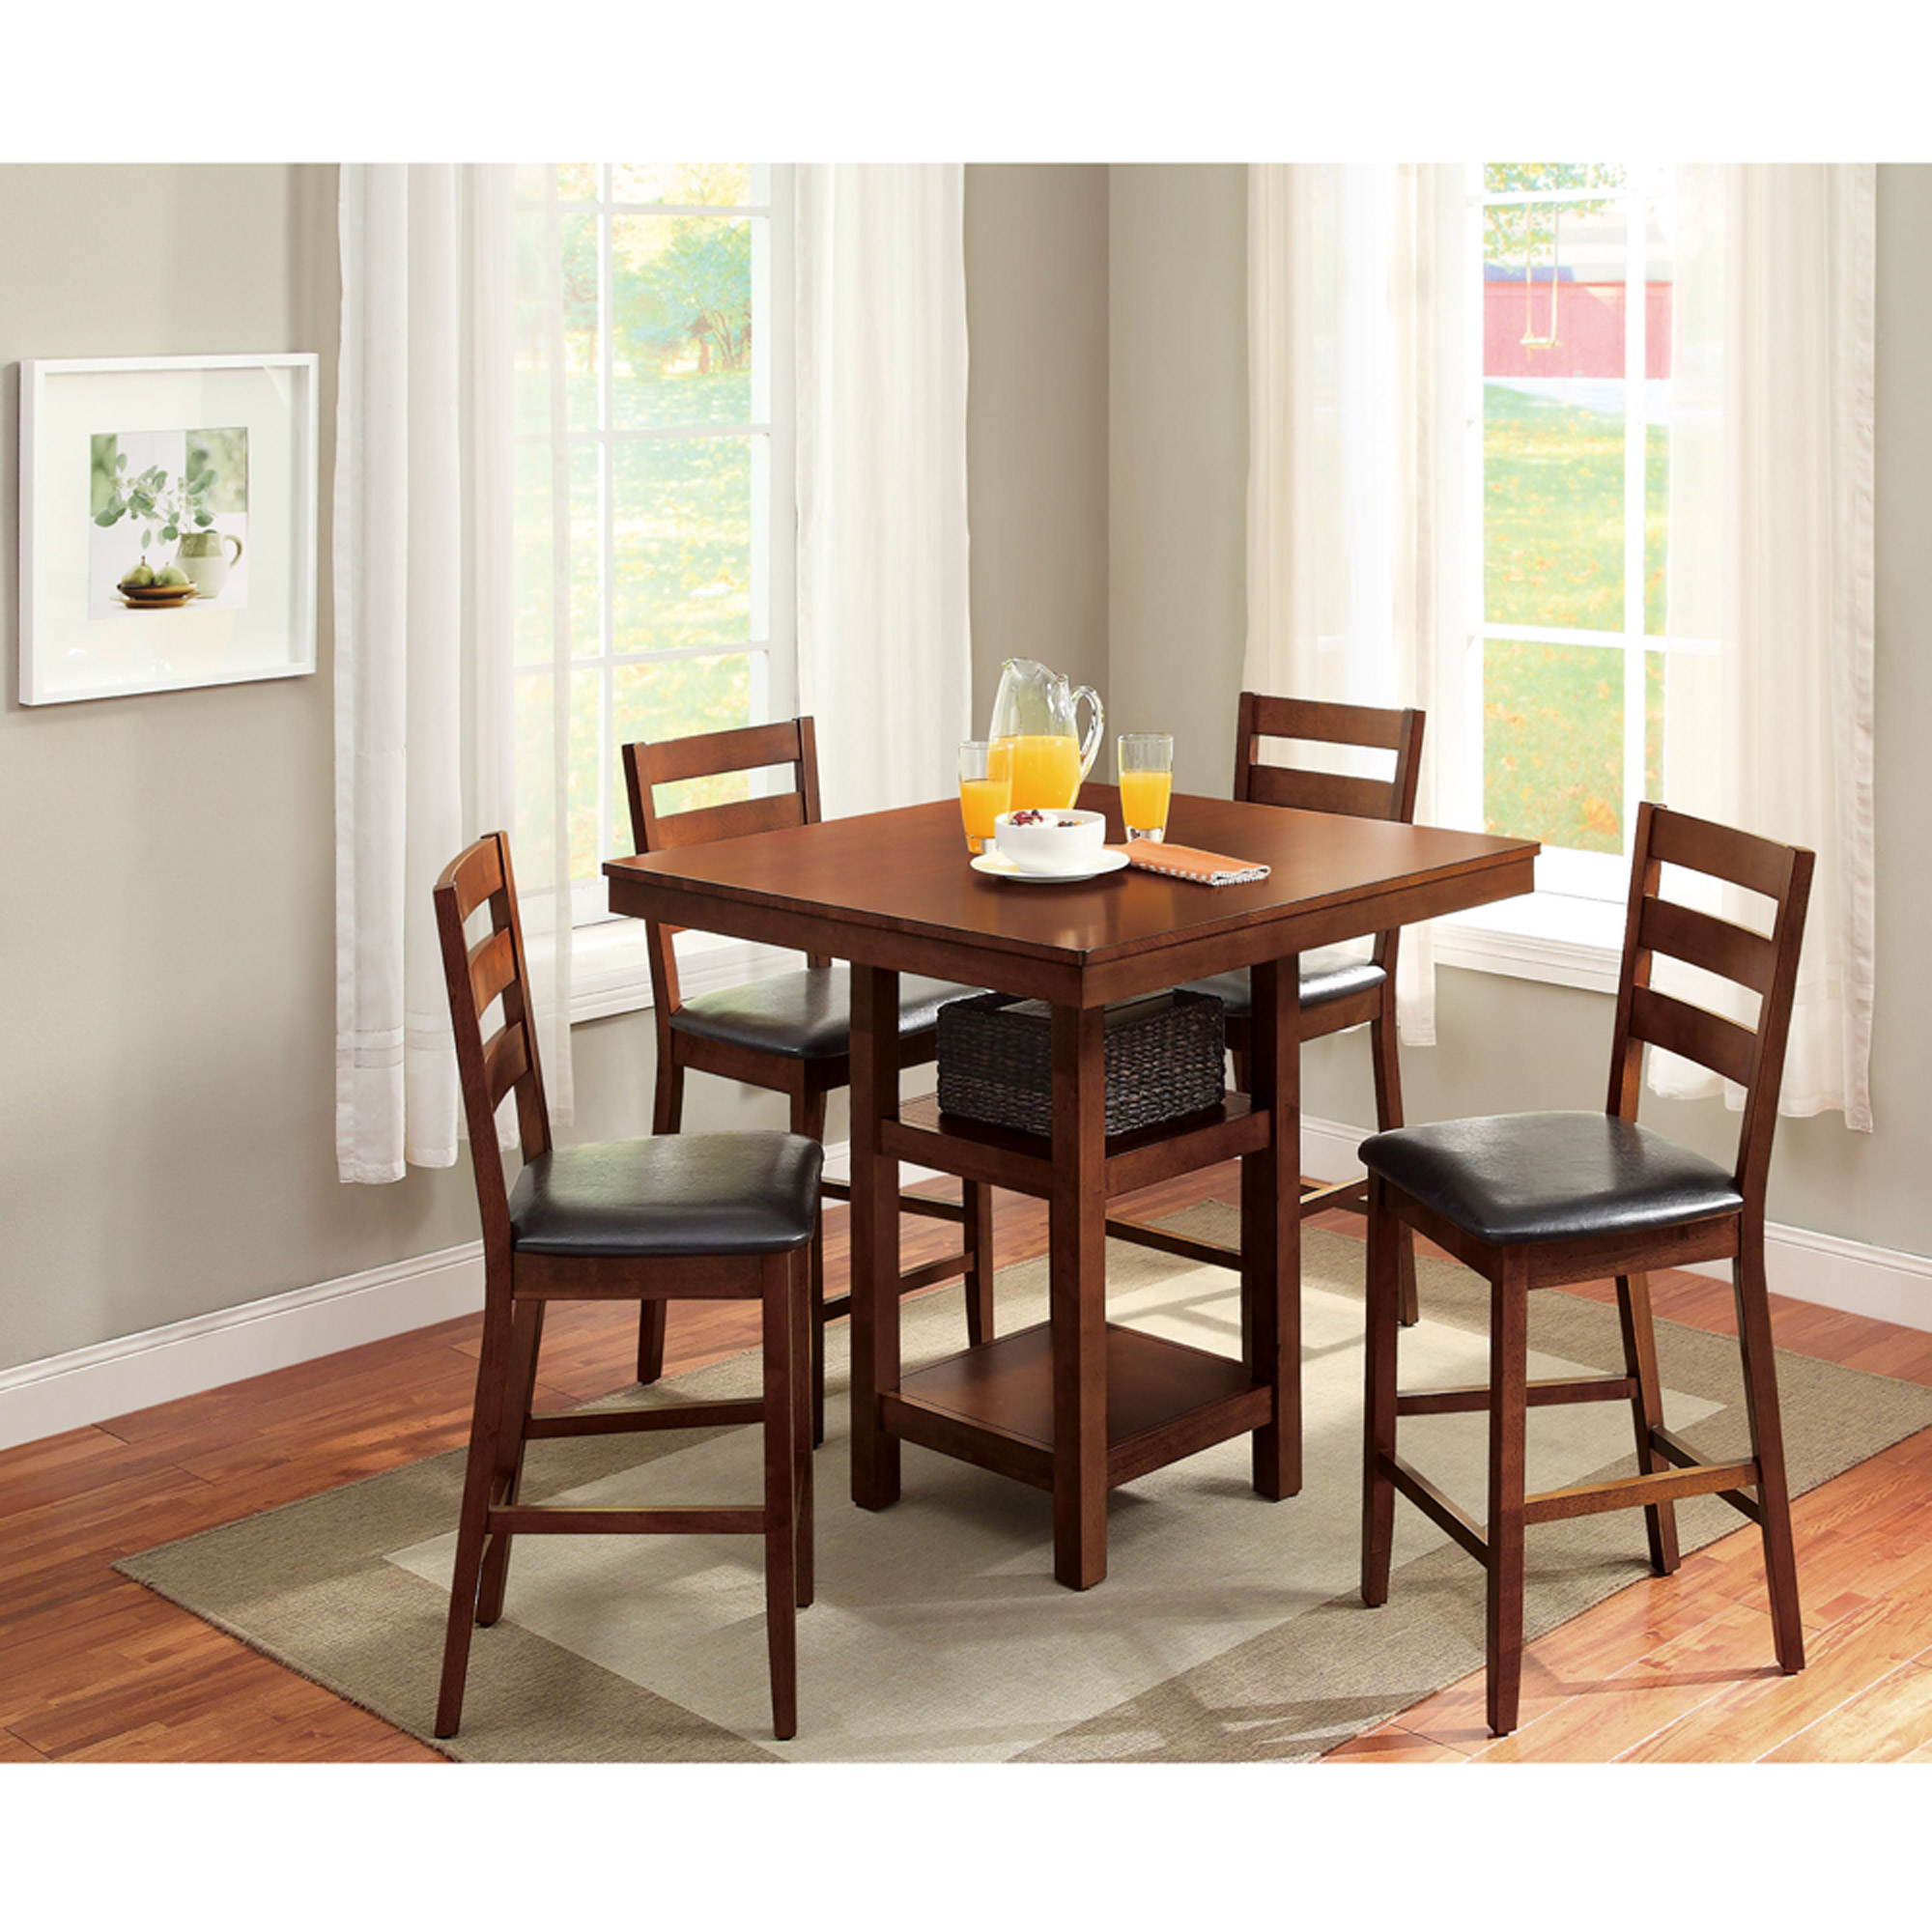 Better Homes And Gardens Dalton Park 5 Piece Counter Height Dining Set,  Mocha Part 83